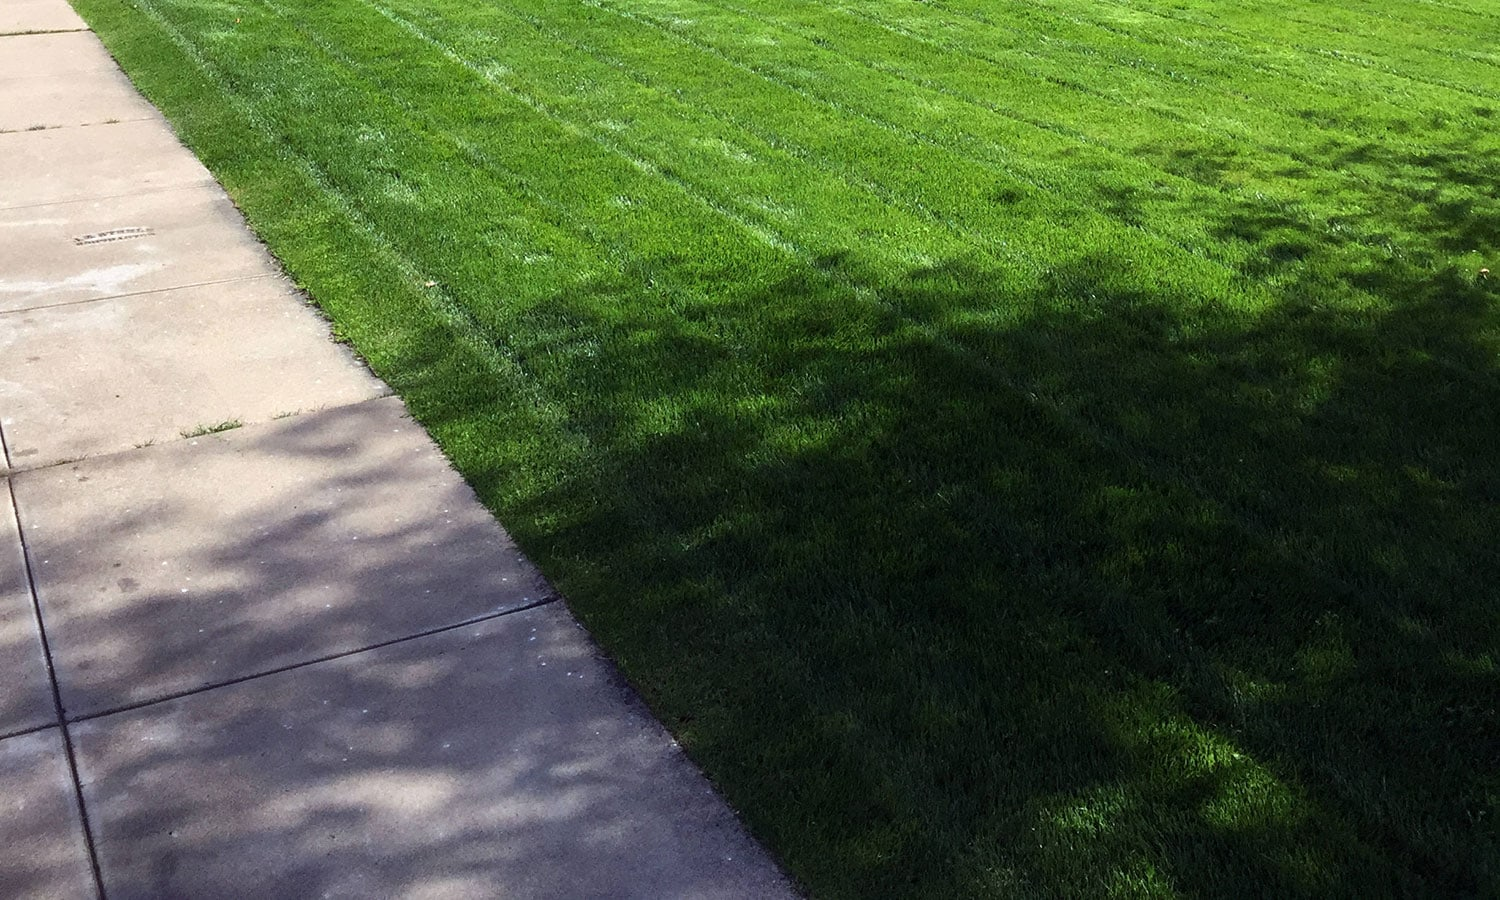 <p>freshly mowed lawn with a sidewalk on the left</p>